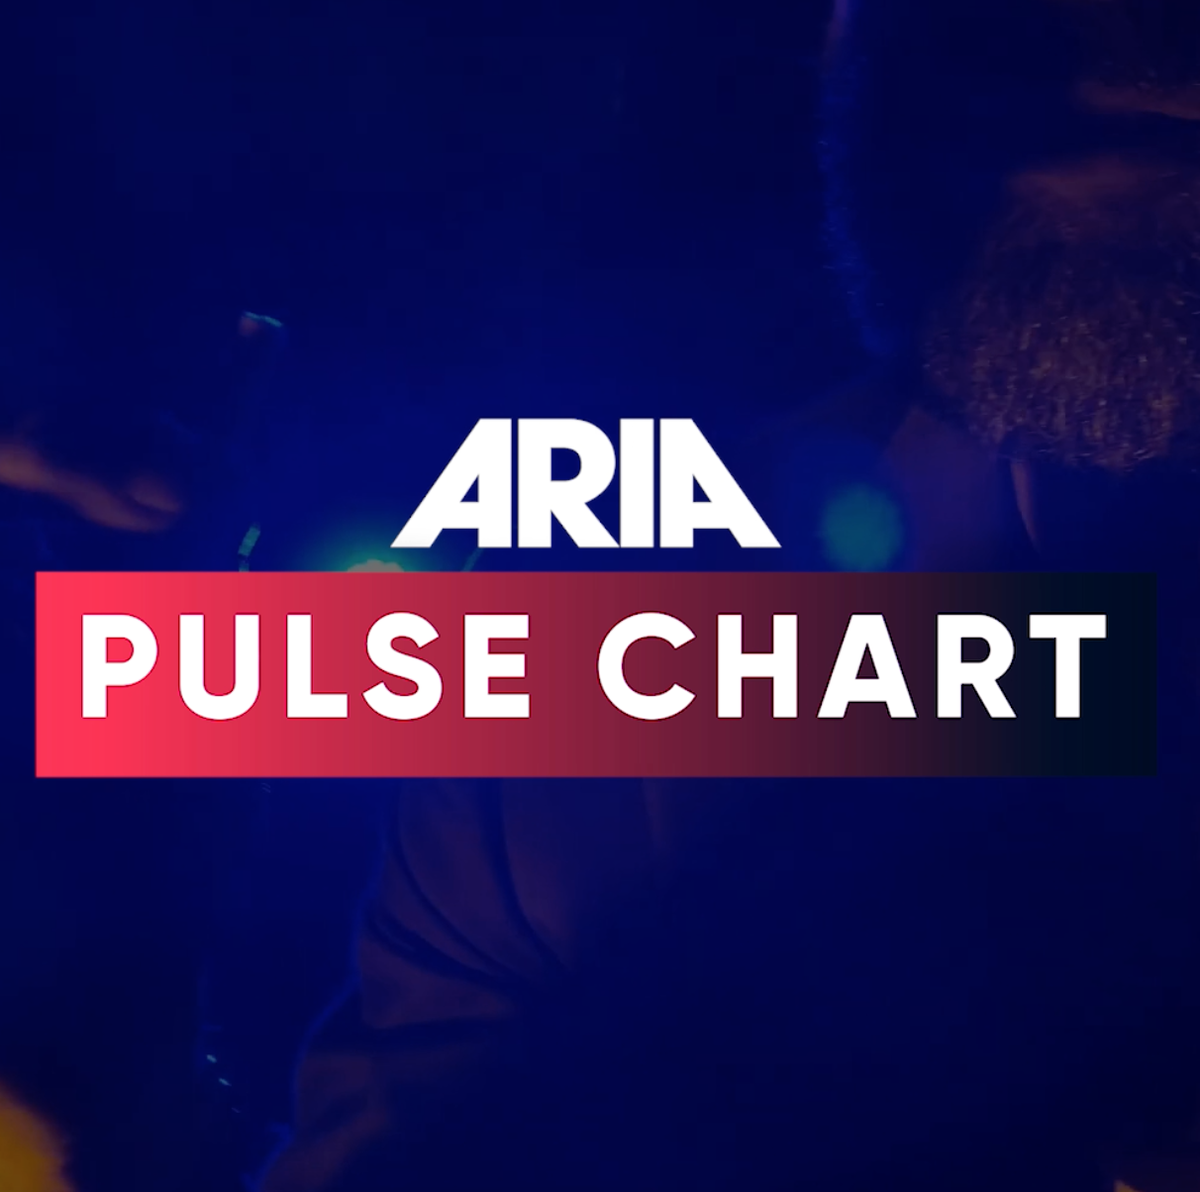 Check out what burning up this week's #ARIACharts on the Pulse Chart with @billieeilish, @JuiceWorlddd, @djkhaled, @maroon5 and more! https://t.co/ZhibD0s8Mb